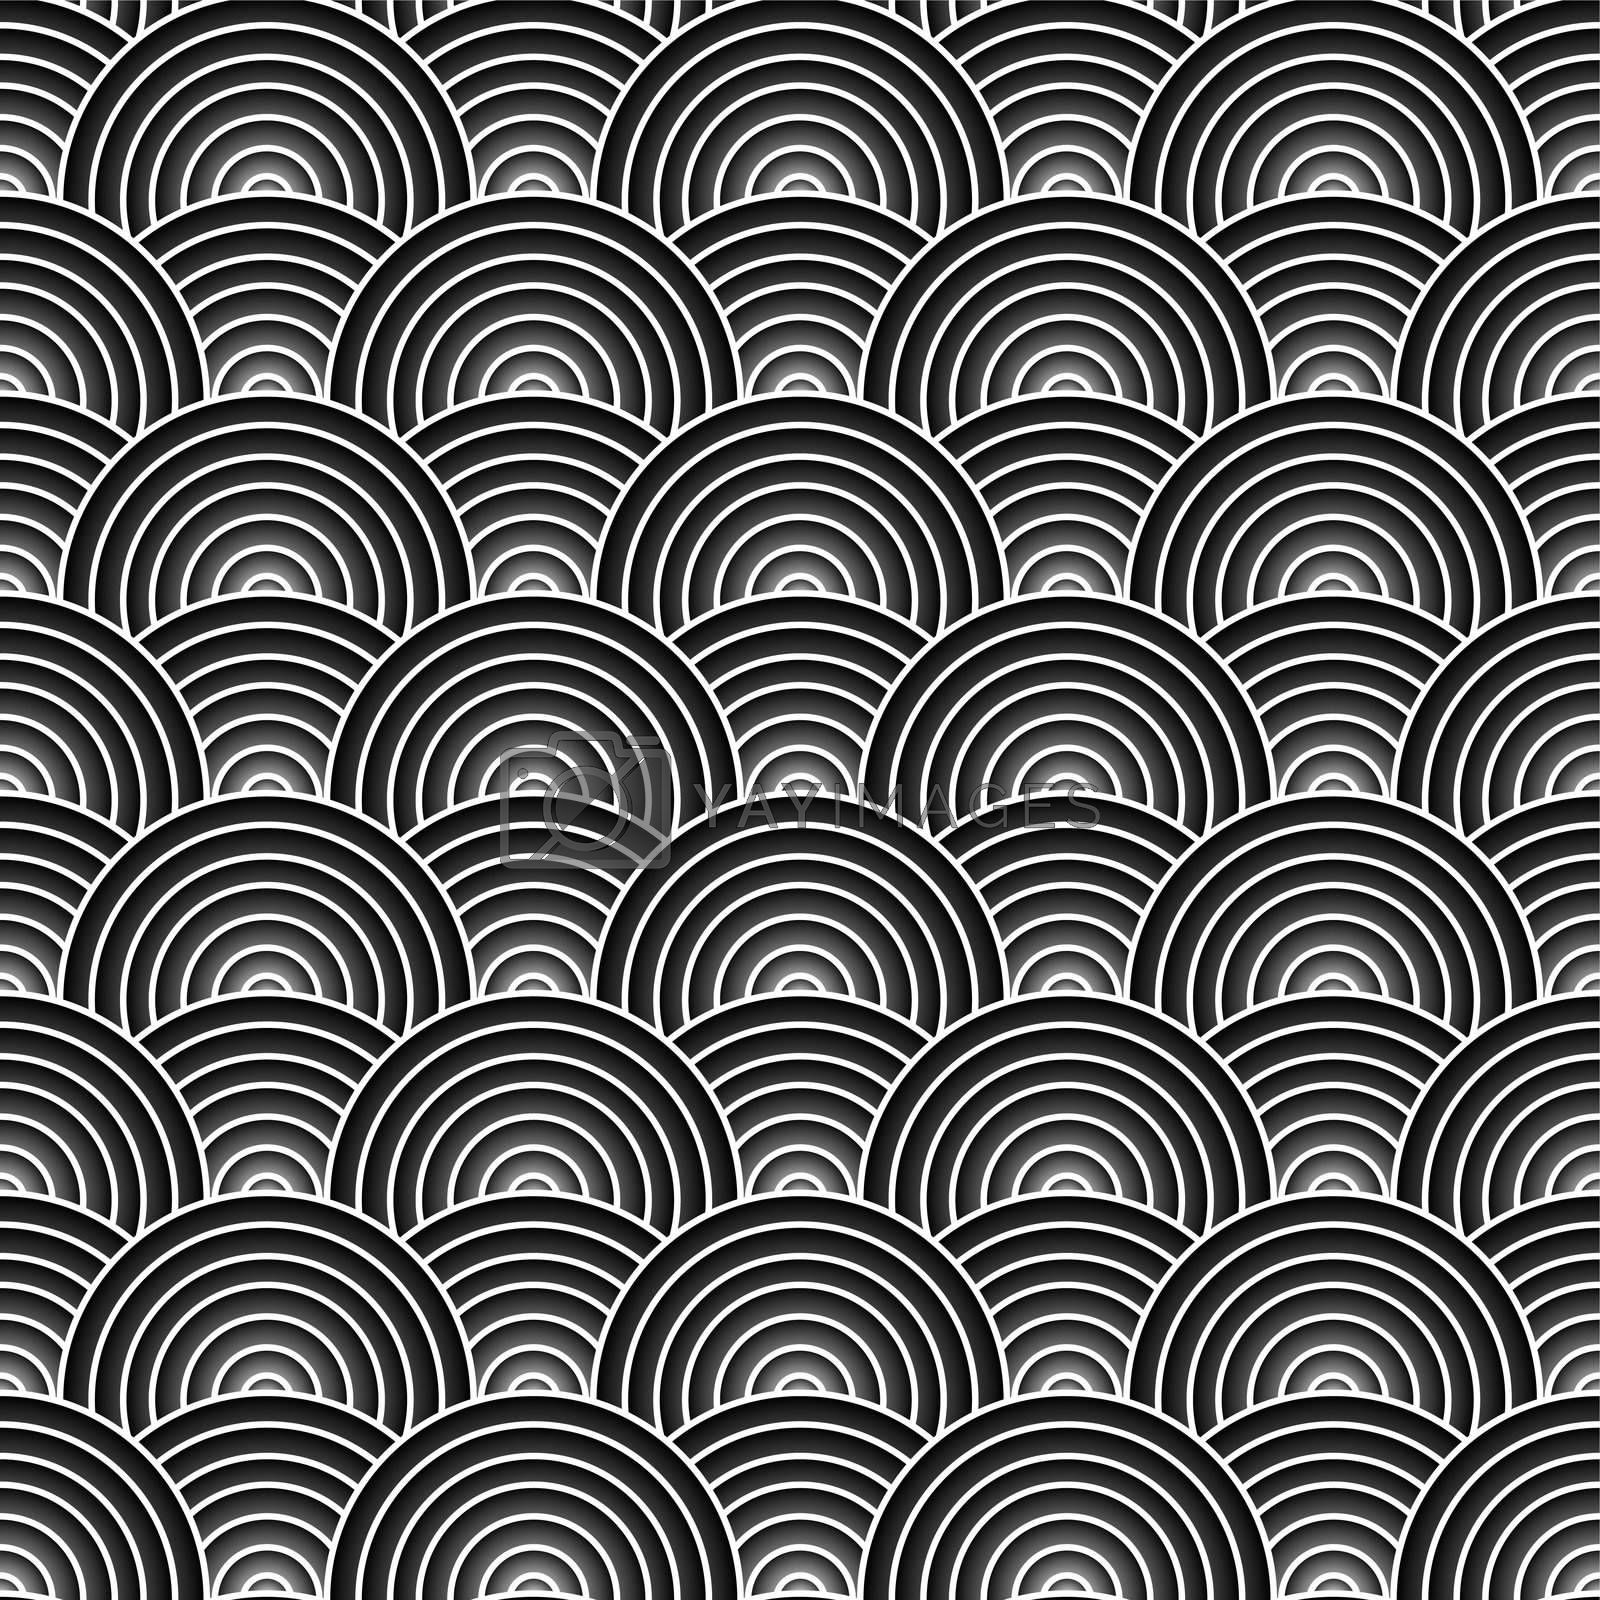 Black and white circular design that seamlessly repeats